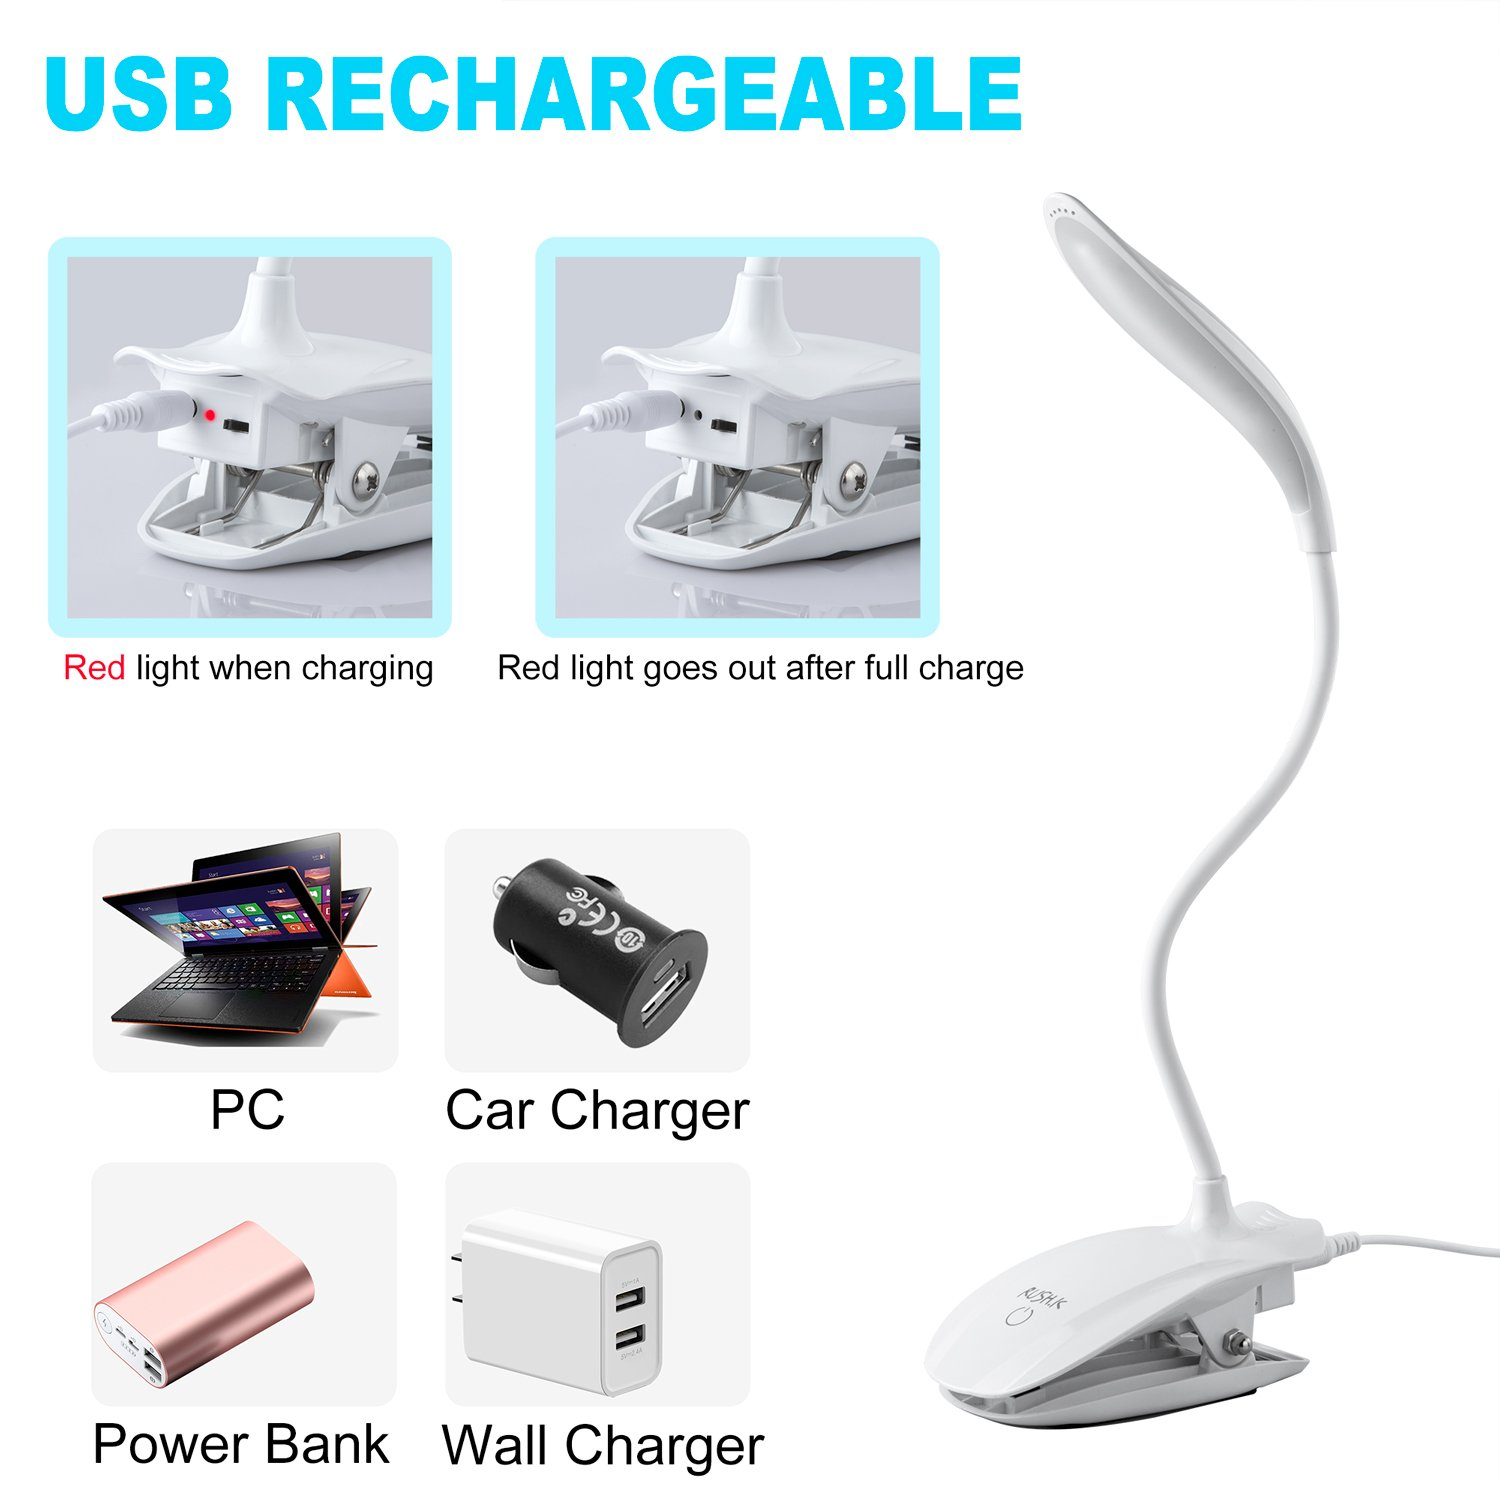 16 LED Rechargeable Reading Book lamp for Bookworms /& Kids /& Students Clip Lamp with 3-Level Dimmer//Touch Switch for Desk,Table,Bed,Headboard,Piano,Computer LED Clip on Light